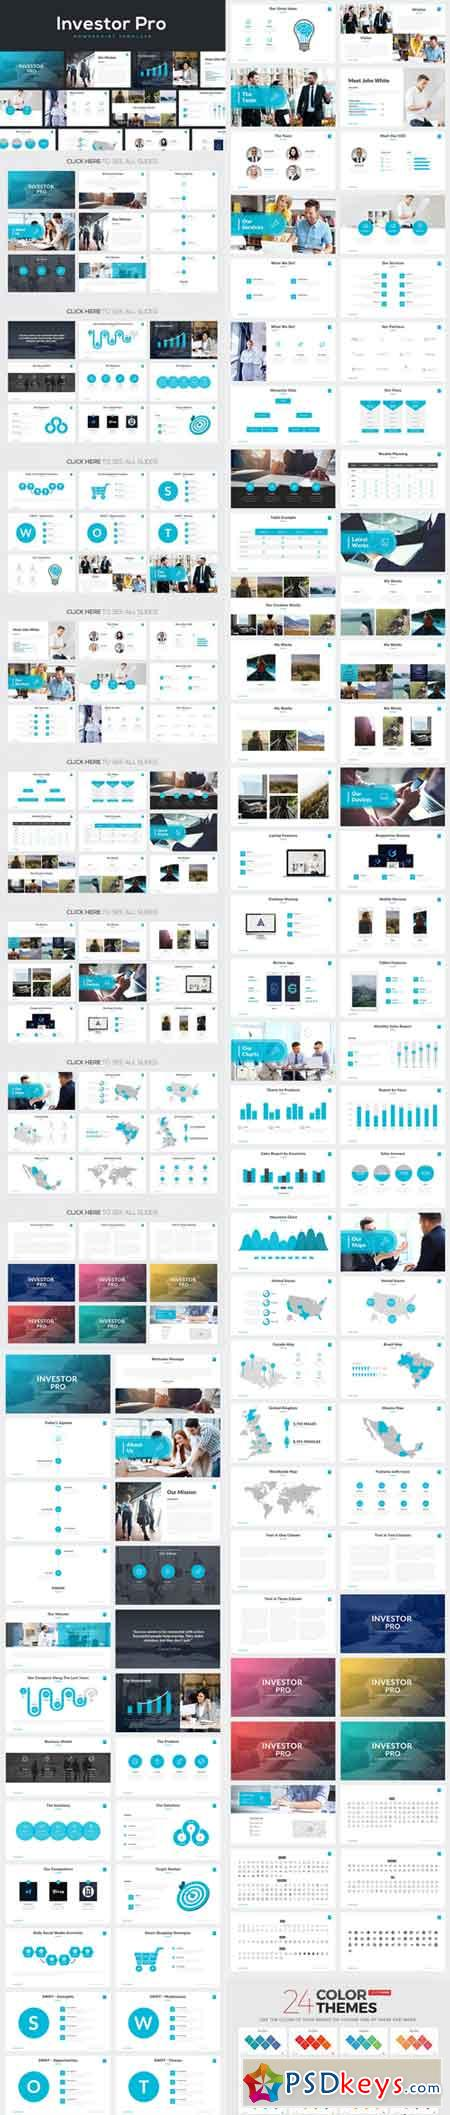 Investor Pro Powerpoint Template 727834